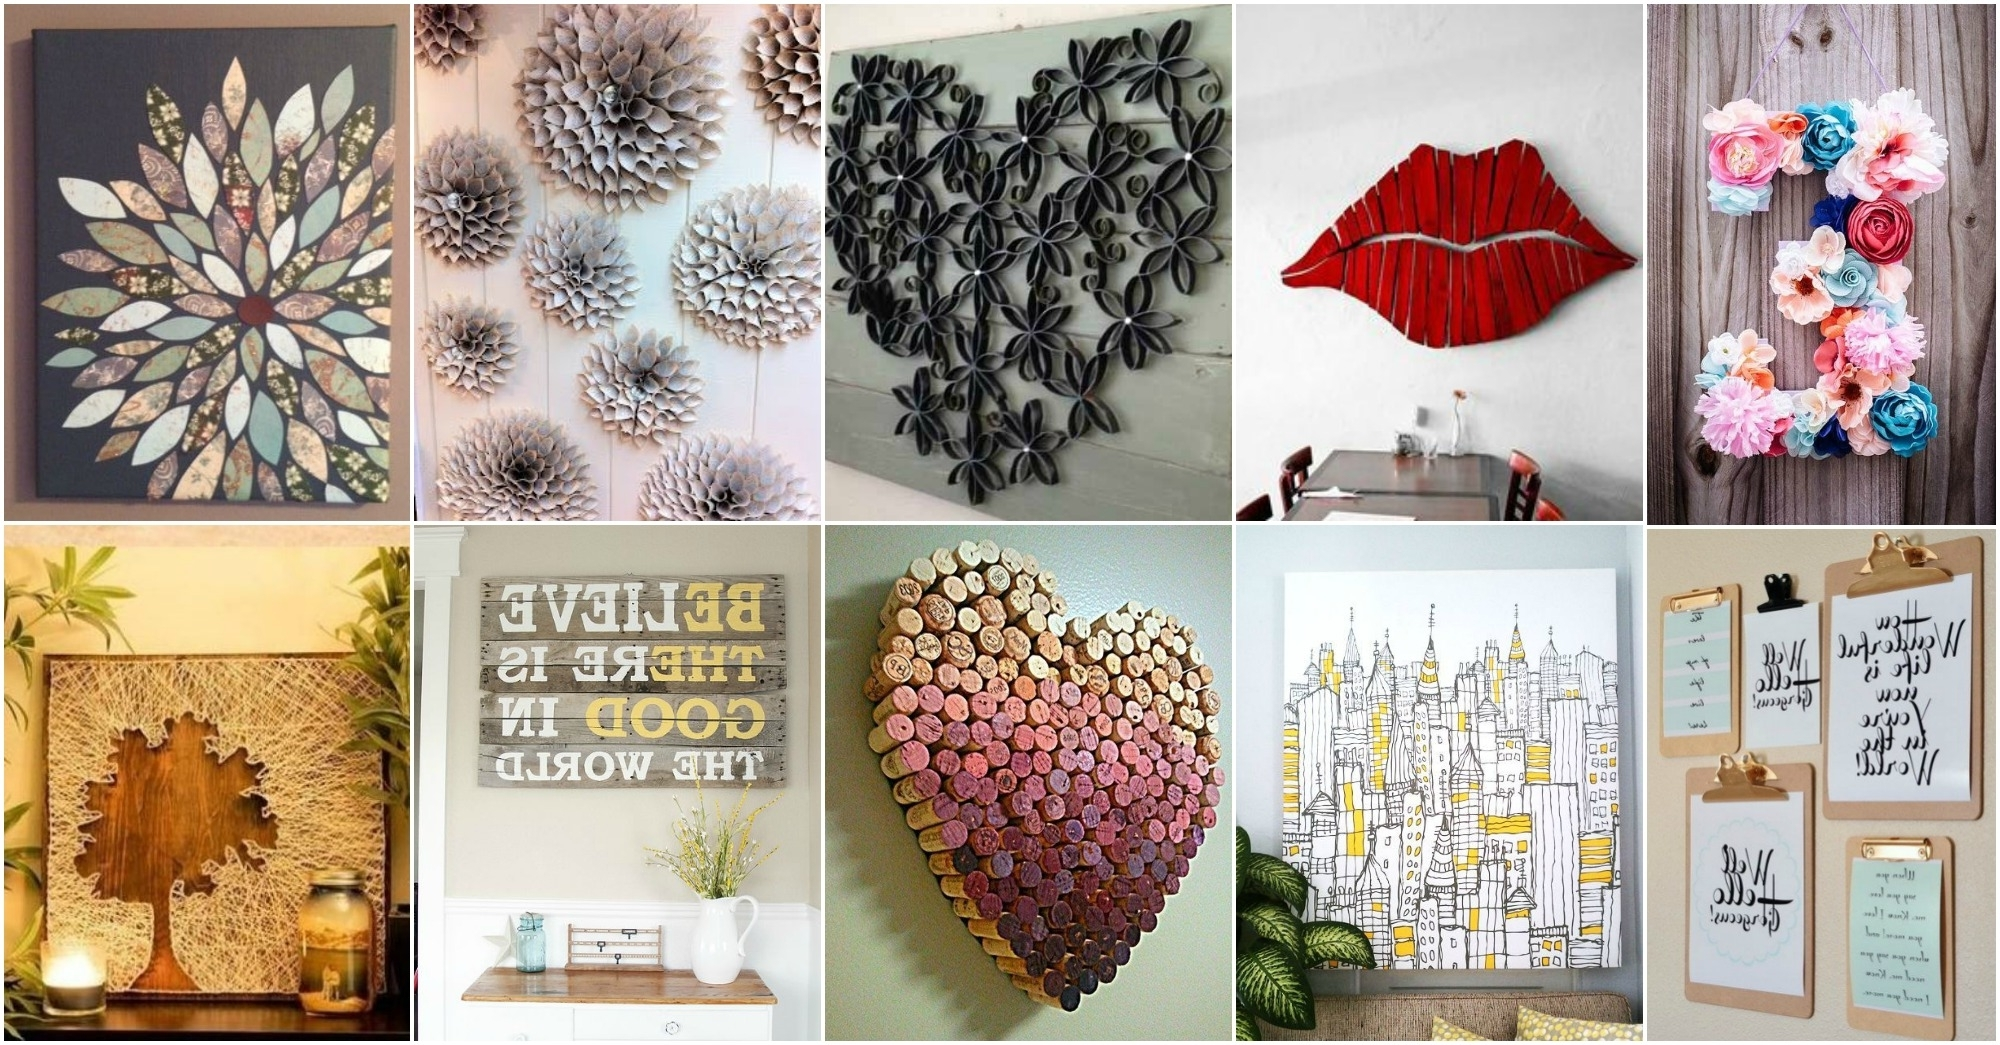 More Amazing Diy Wall Art Ideas Regarding Most Recently Released Wall Art Diy (View 5 of 15)